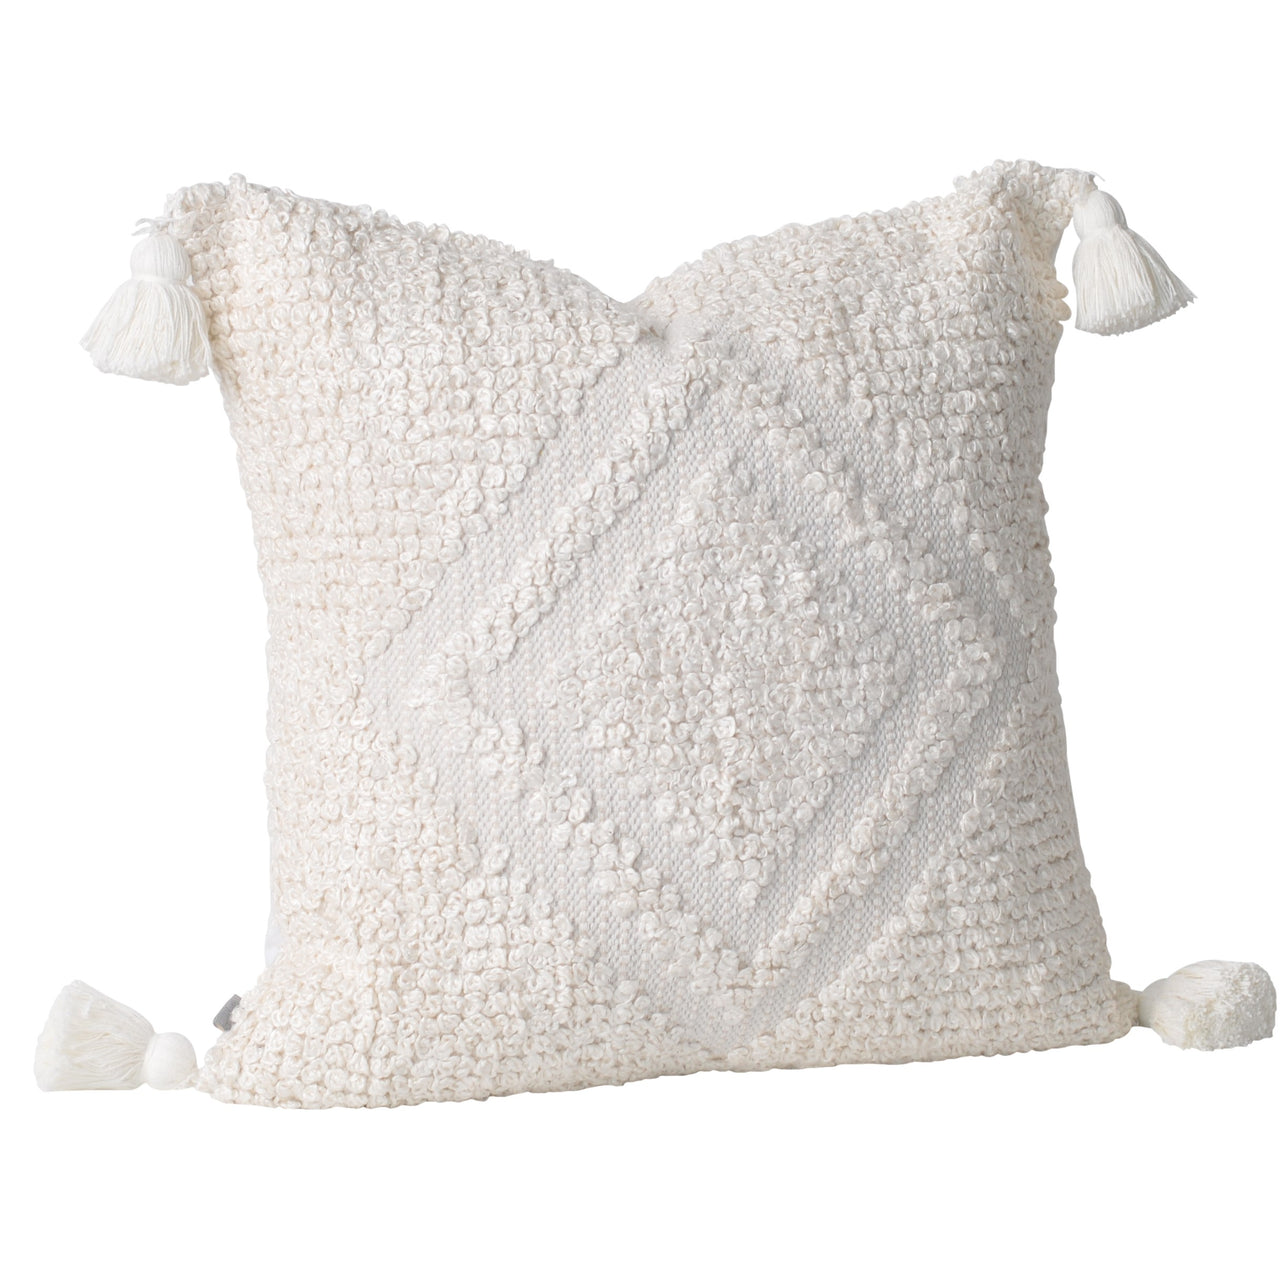 white ivory diamond tassels tassles boho bohemian coastal patterned euro cushion pillow